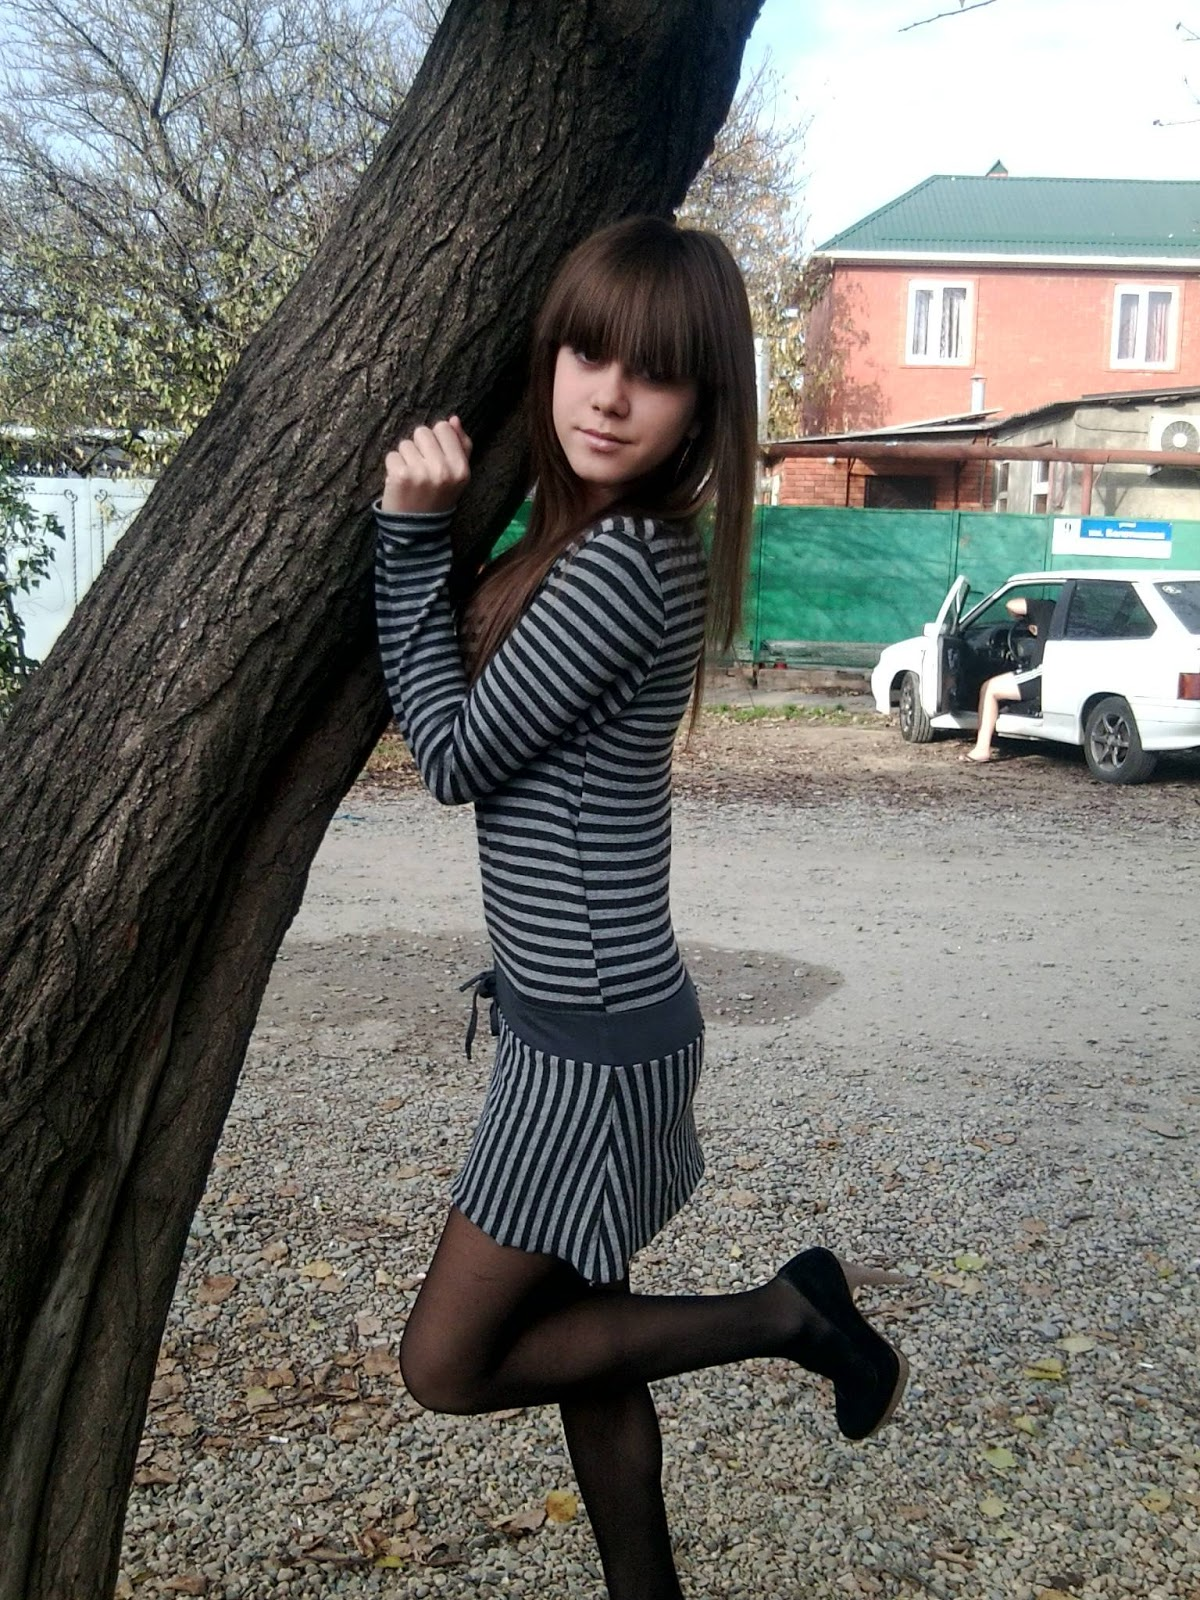 Amateur Teen In Black Pantyhose 2  Pantyhose Fashion Blog-2074